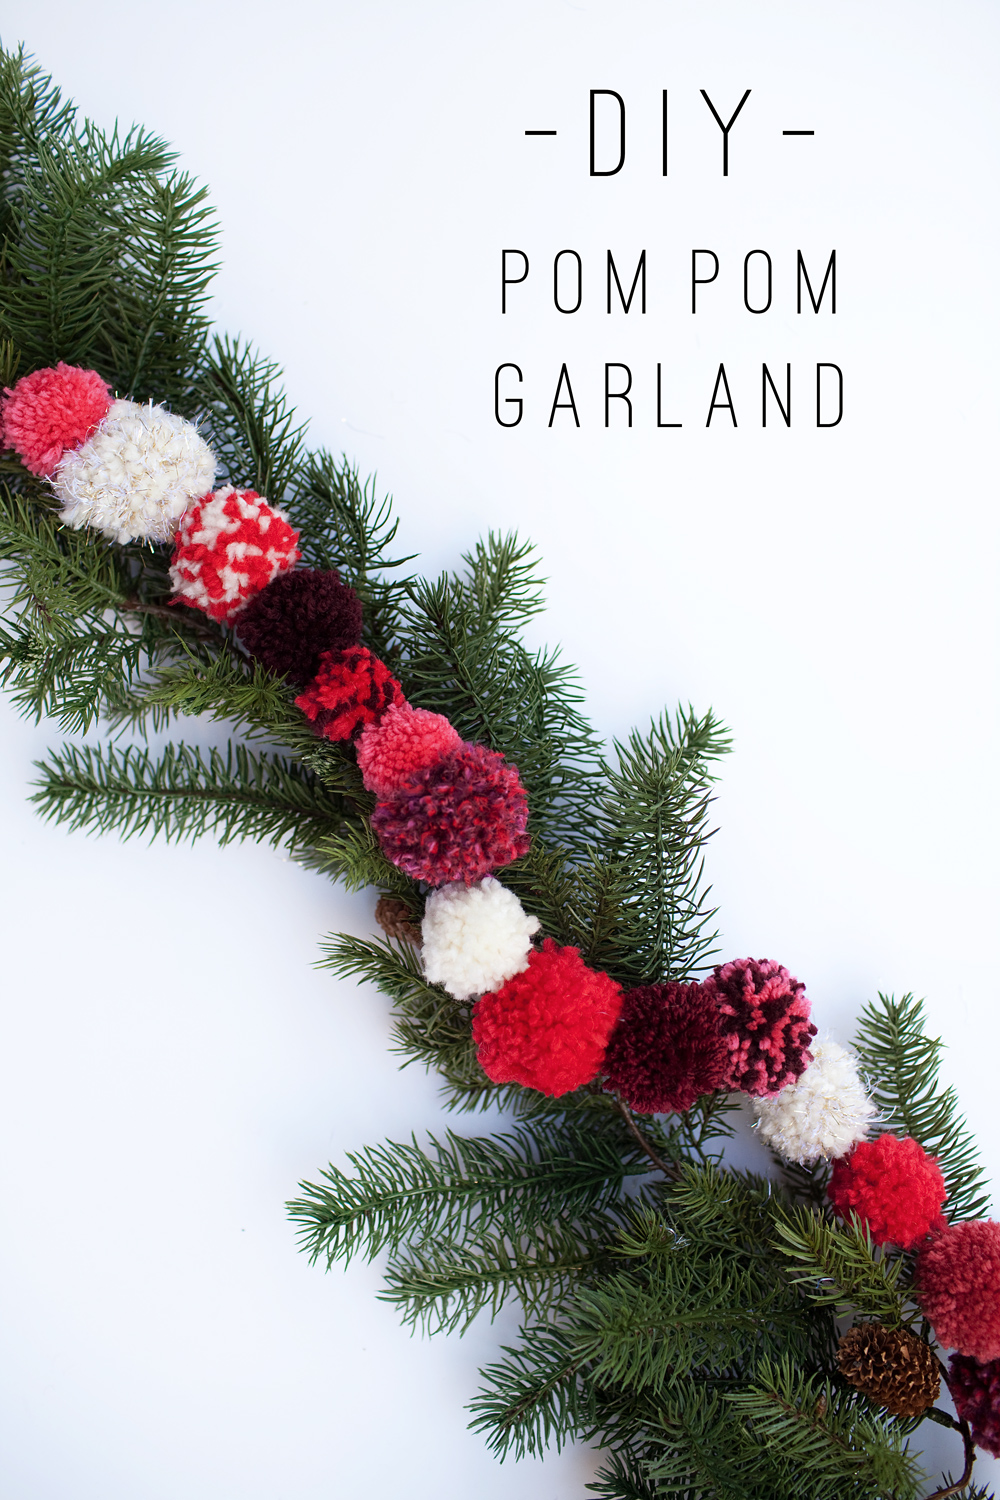 tell diy christmas pom pom garland